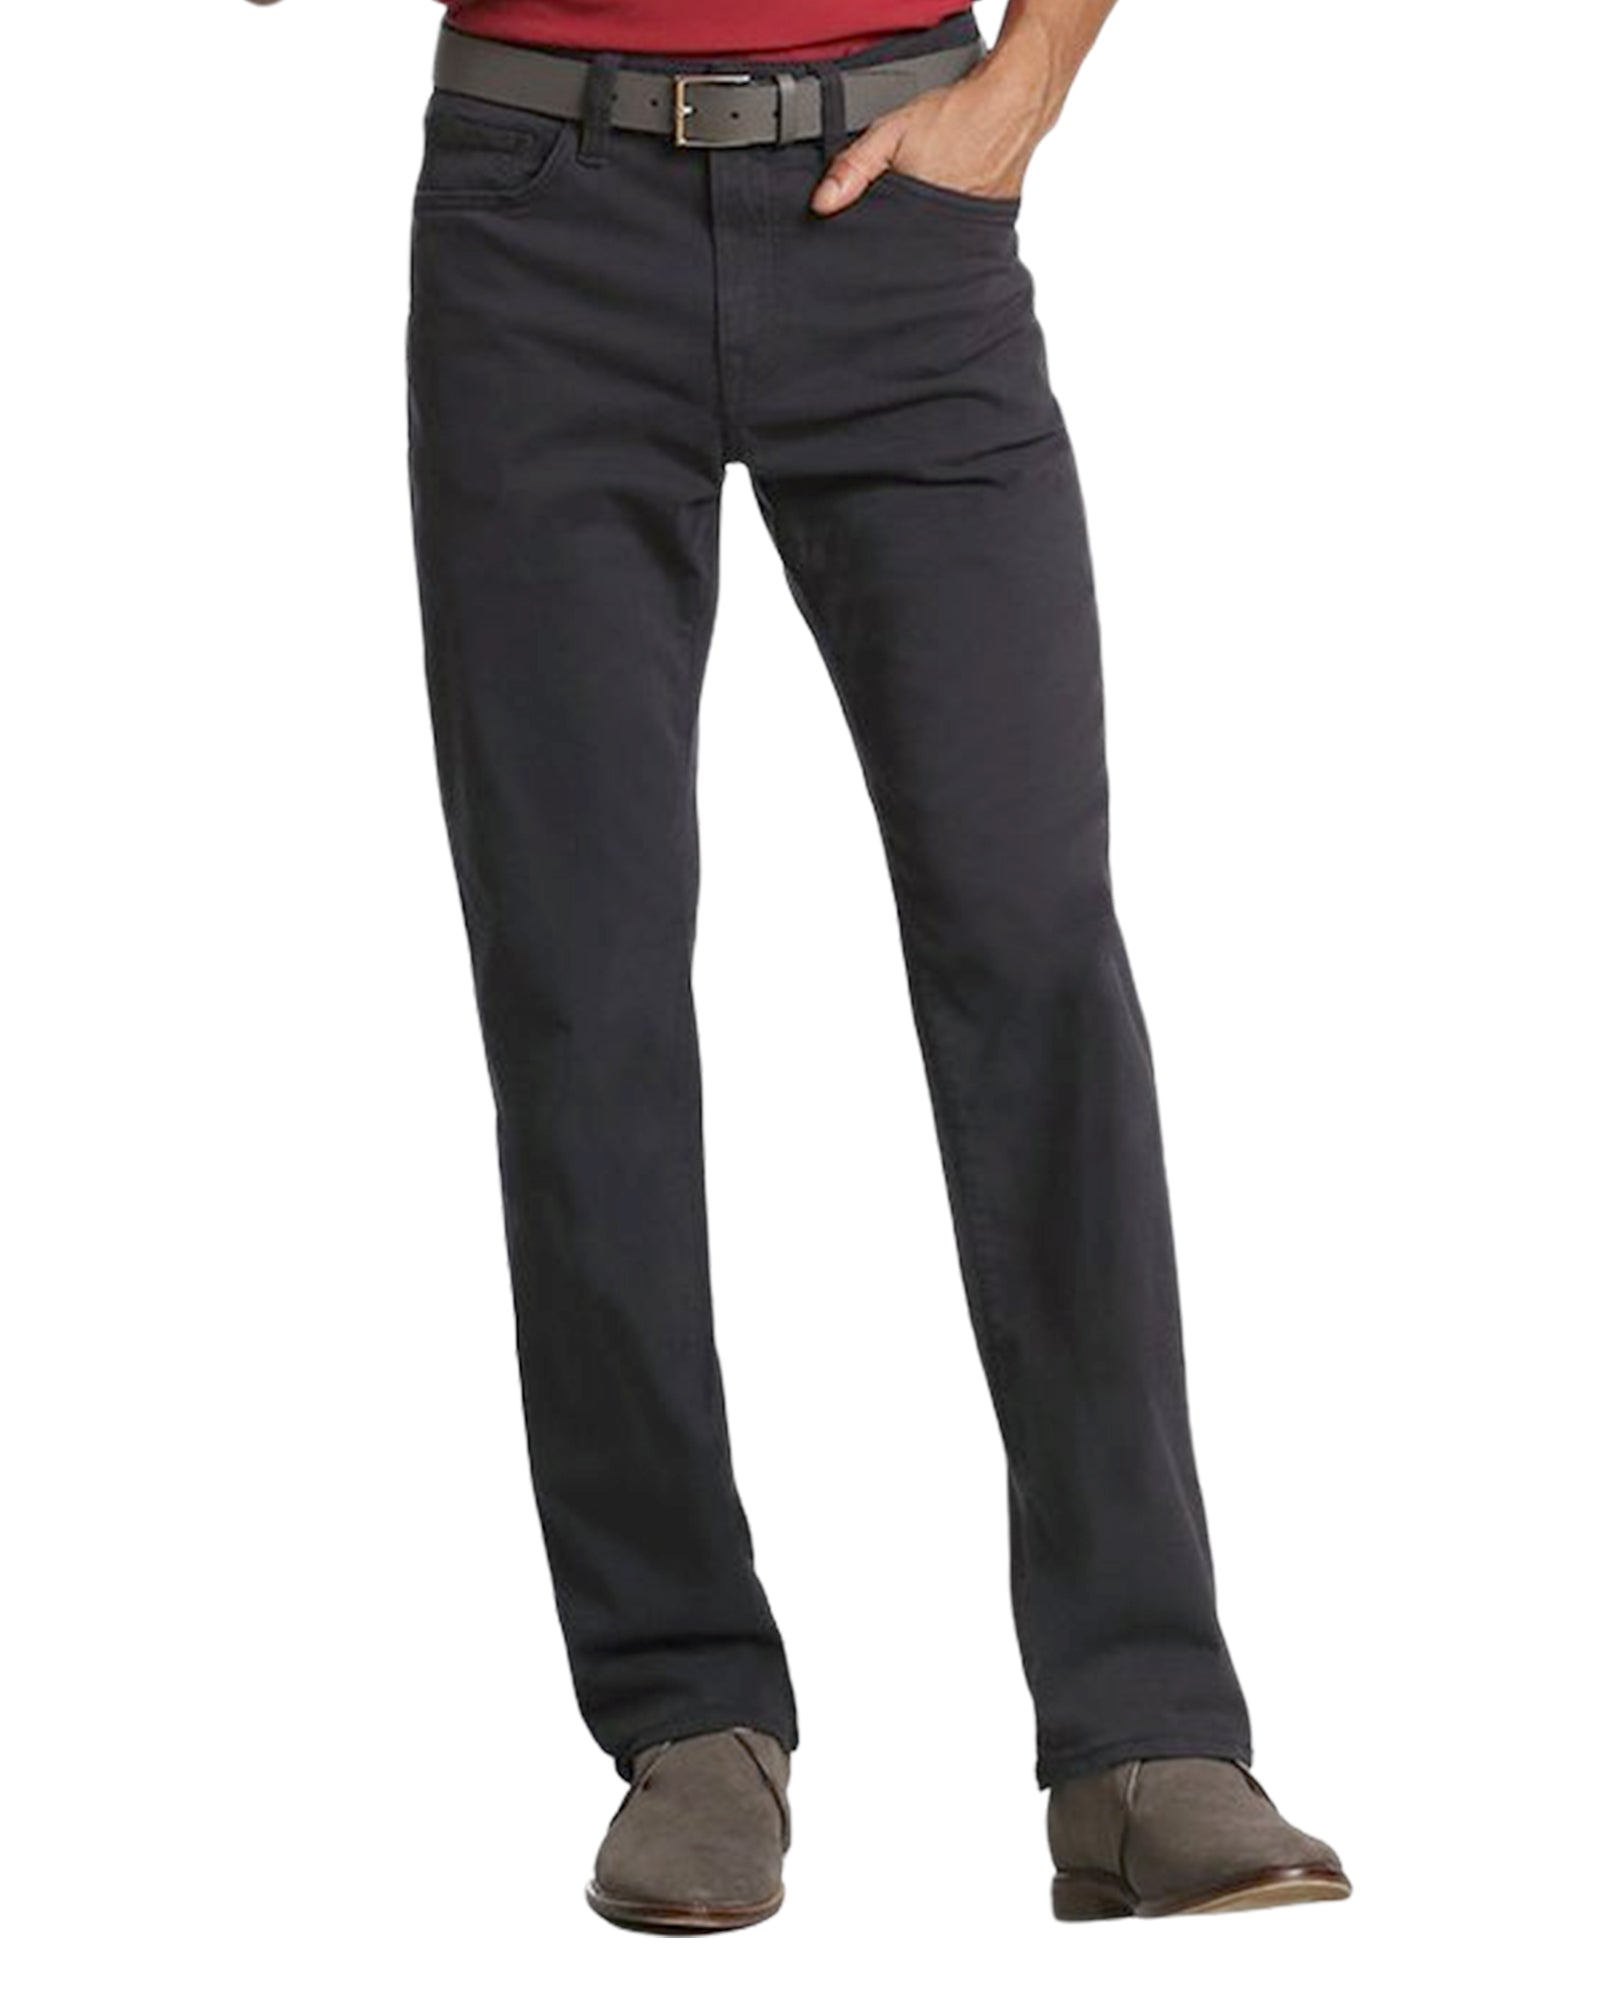 34 Heritage Charisma Fit Select Double Black Jeans - Rainwater's Men's Clothing and Tuxedo Rental